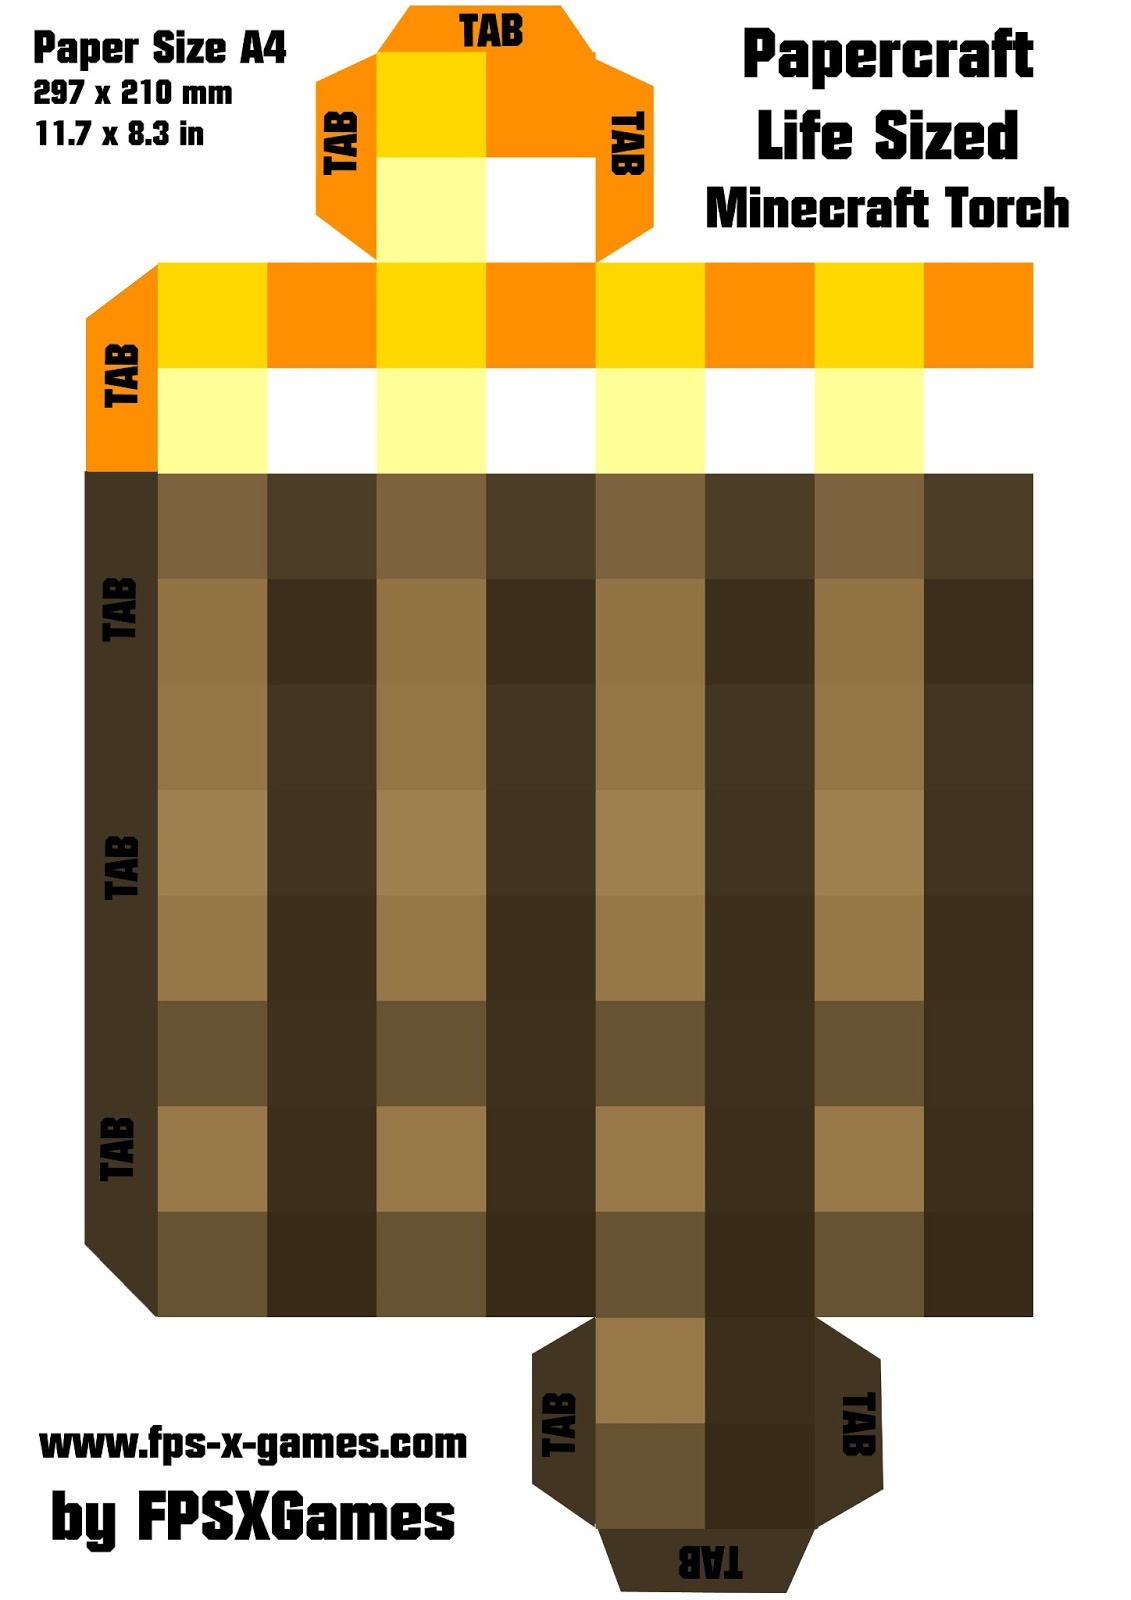 Printable papercraft cut out minecraft life sized torch for Minecraft cut out templates